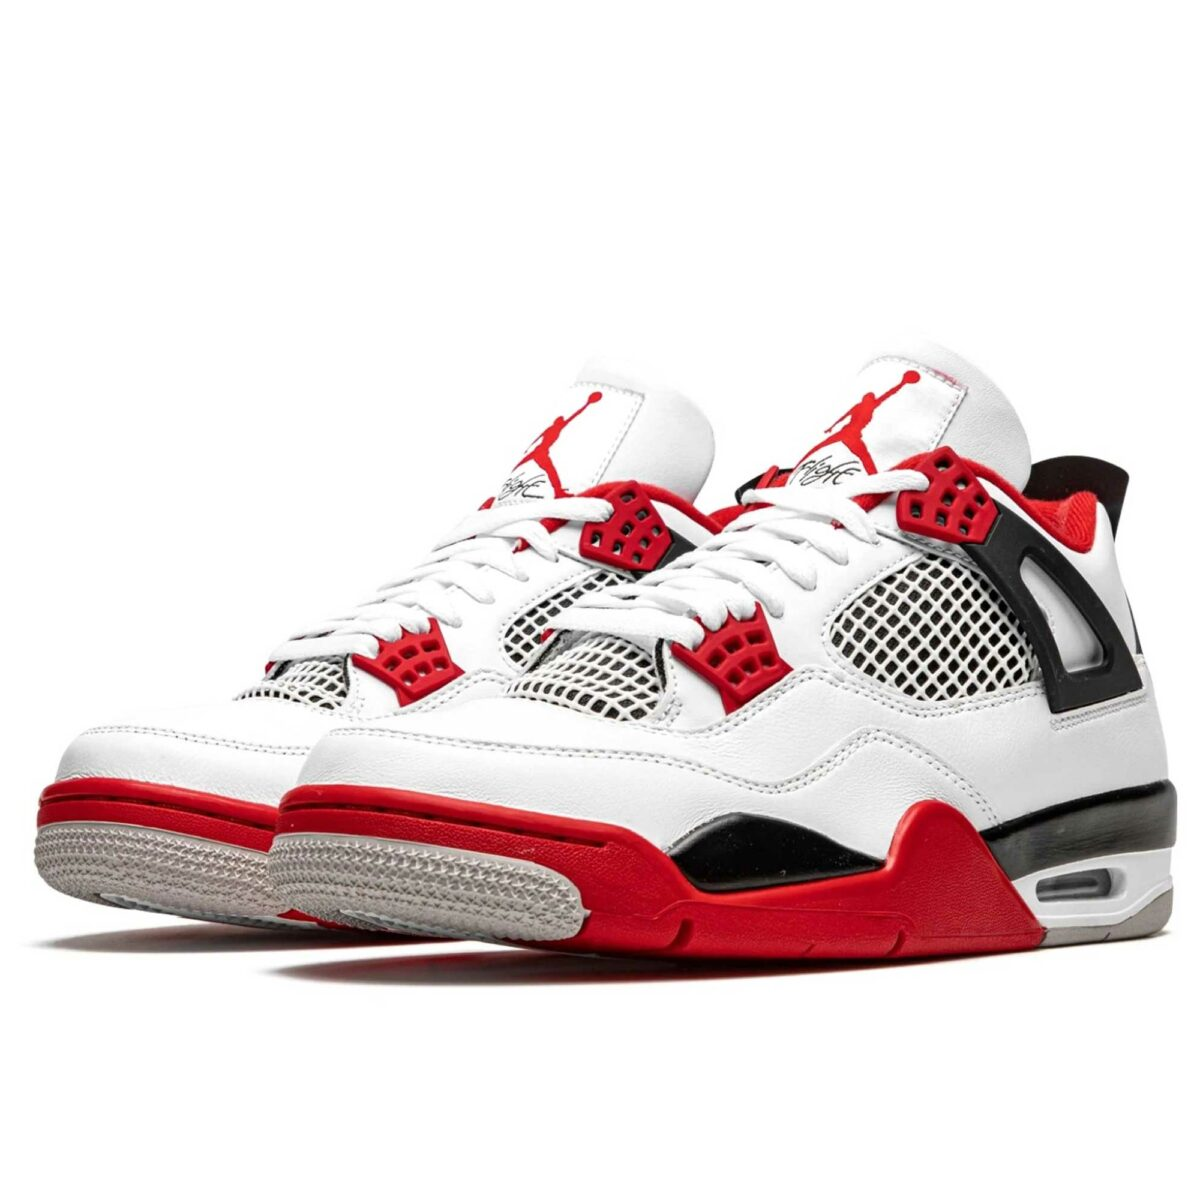 nike air Jordan 4 retro fire red 2020 DC7770_160 купить